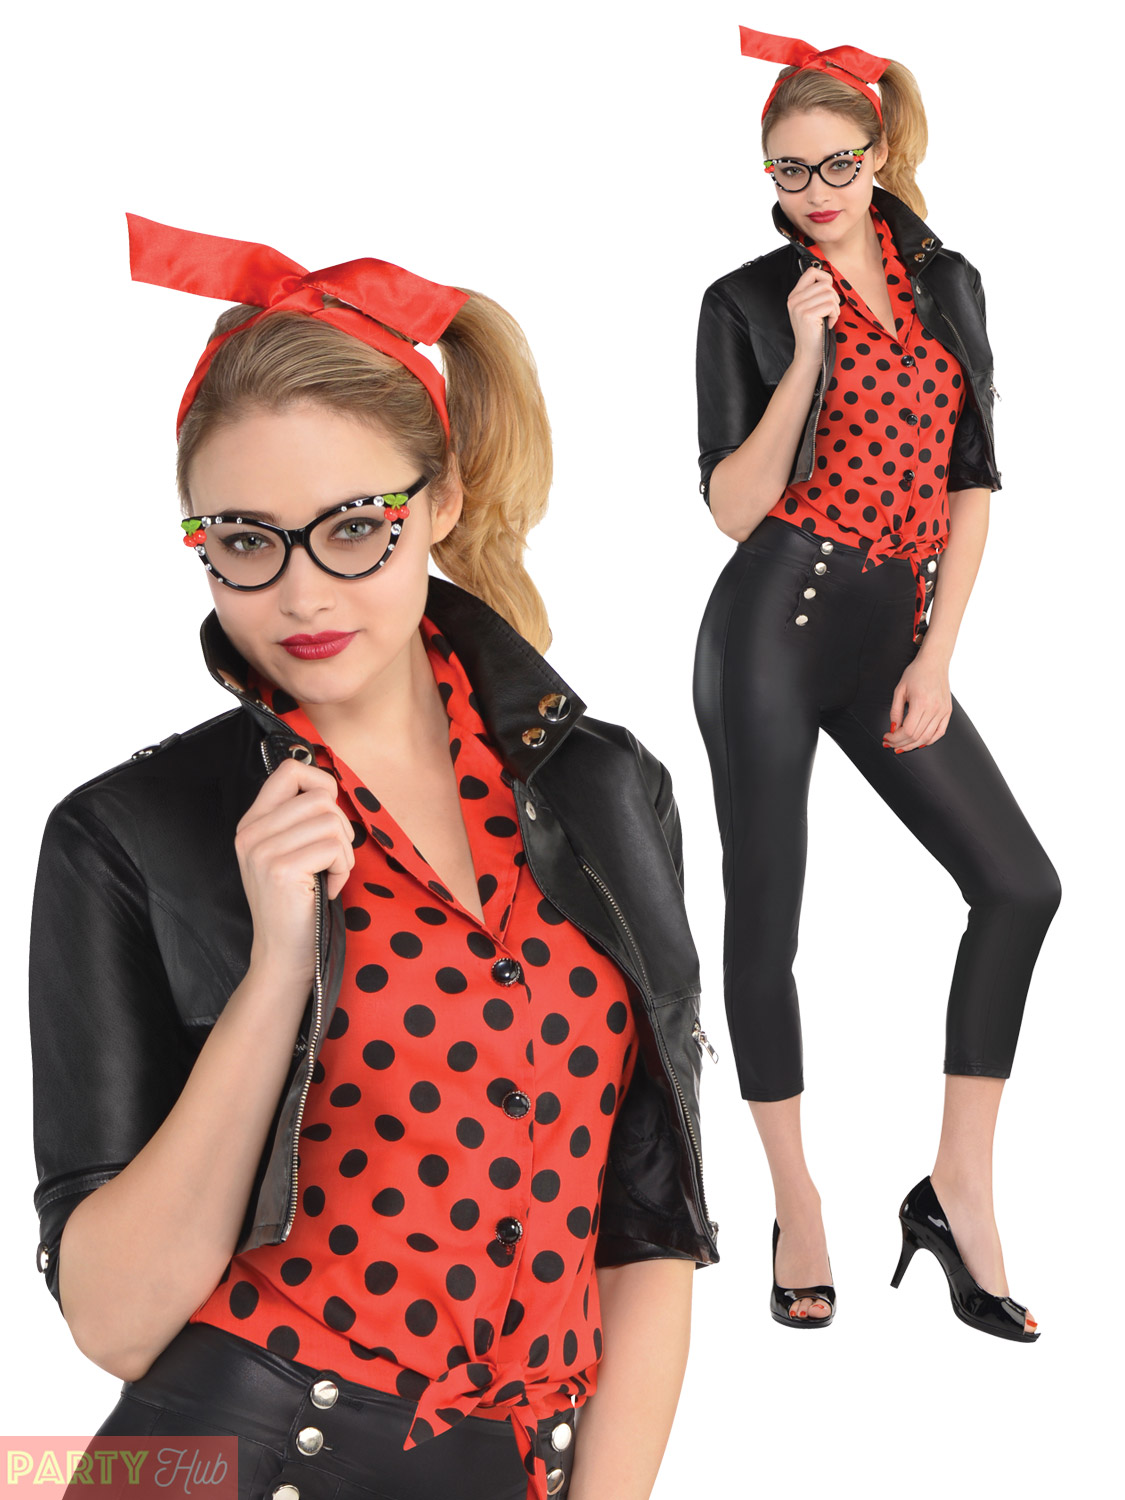 Details about Ladies Rockin Rebel Costume Womens 50s 60s Sexy Rock n Roll  Fancy Dress Outfit